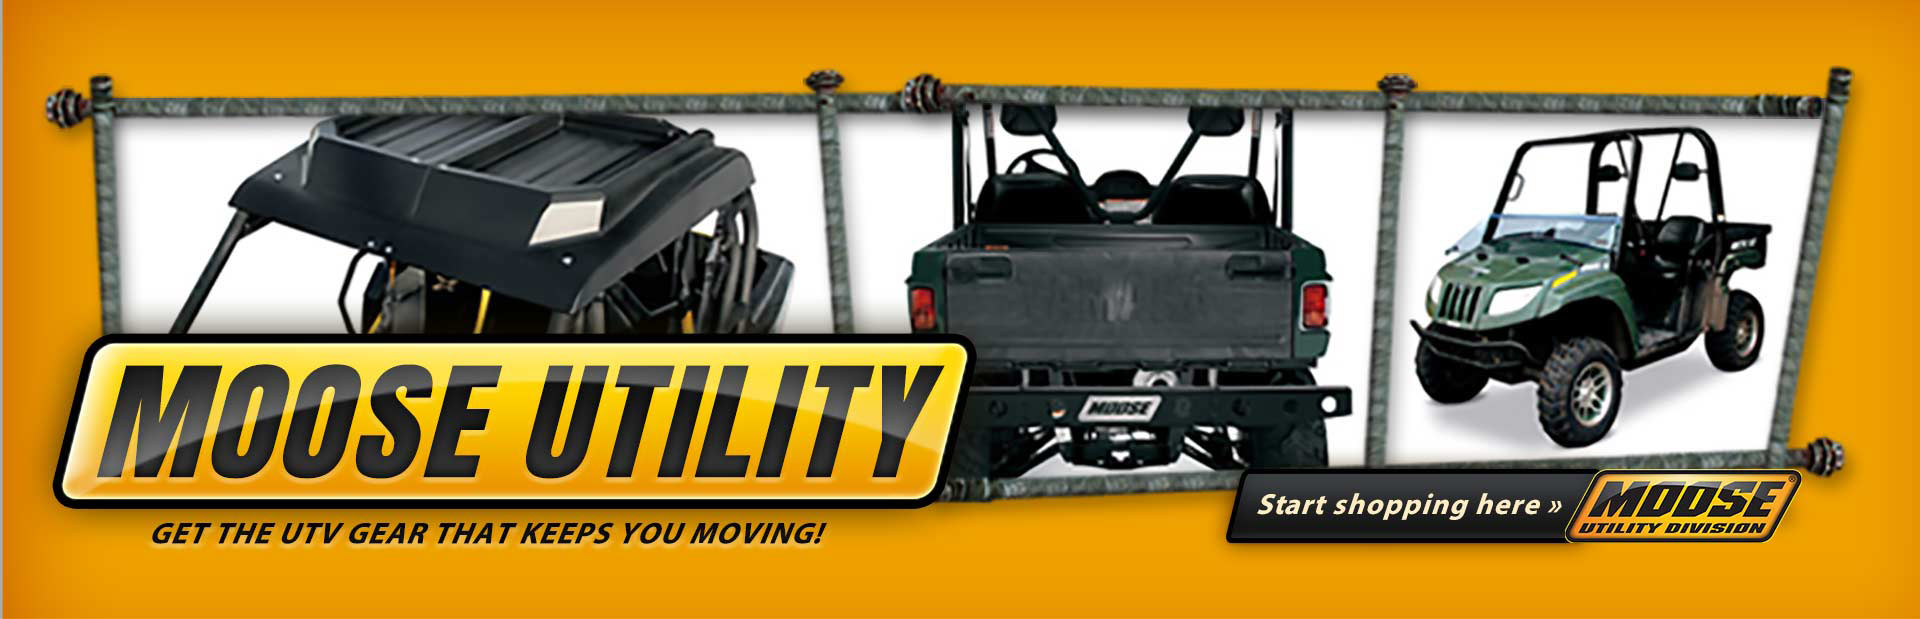 Click here to browse Moose Utility UTV gear.